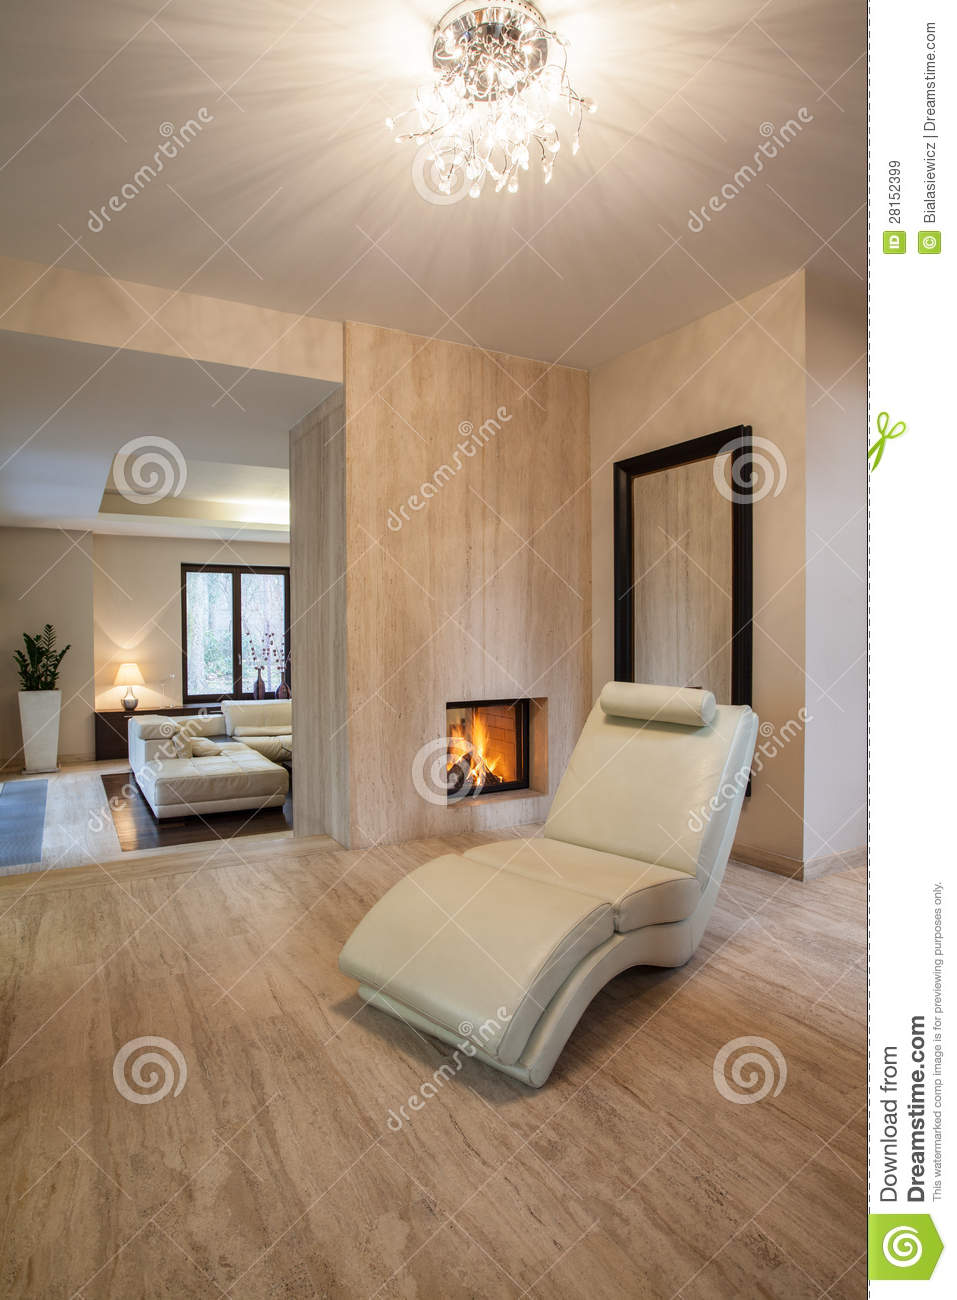 Travertine House: Beige Living Room Royalty-Free Stock